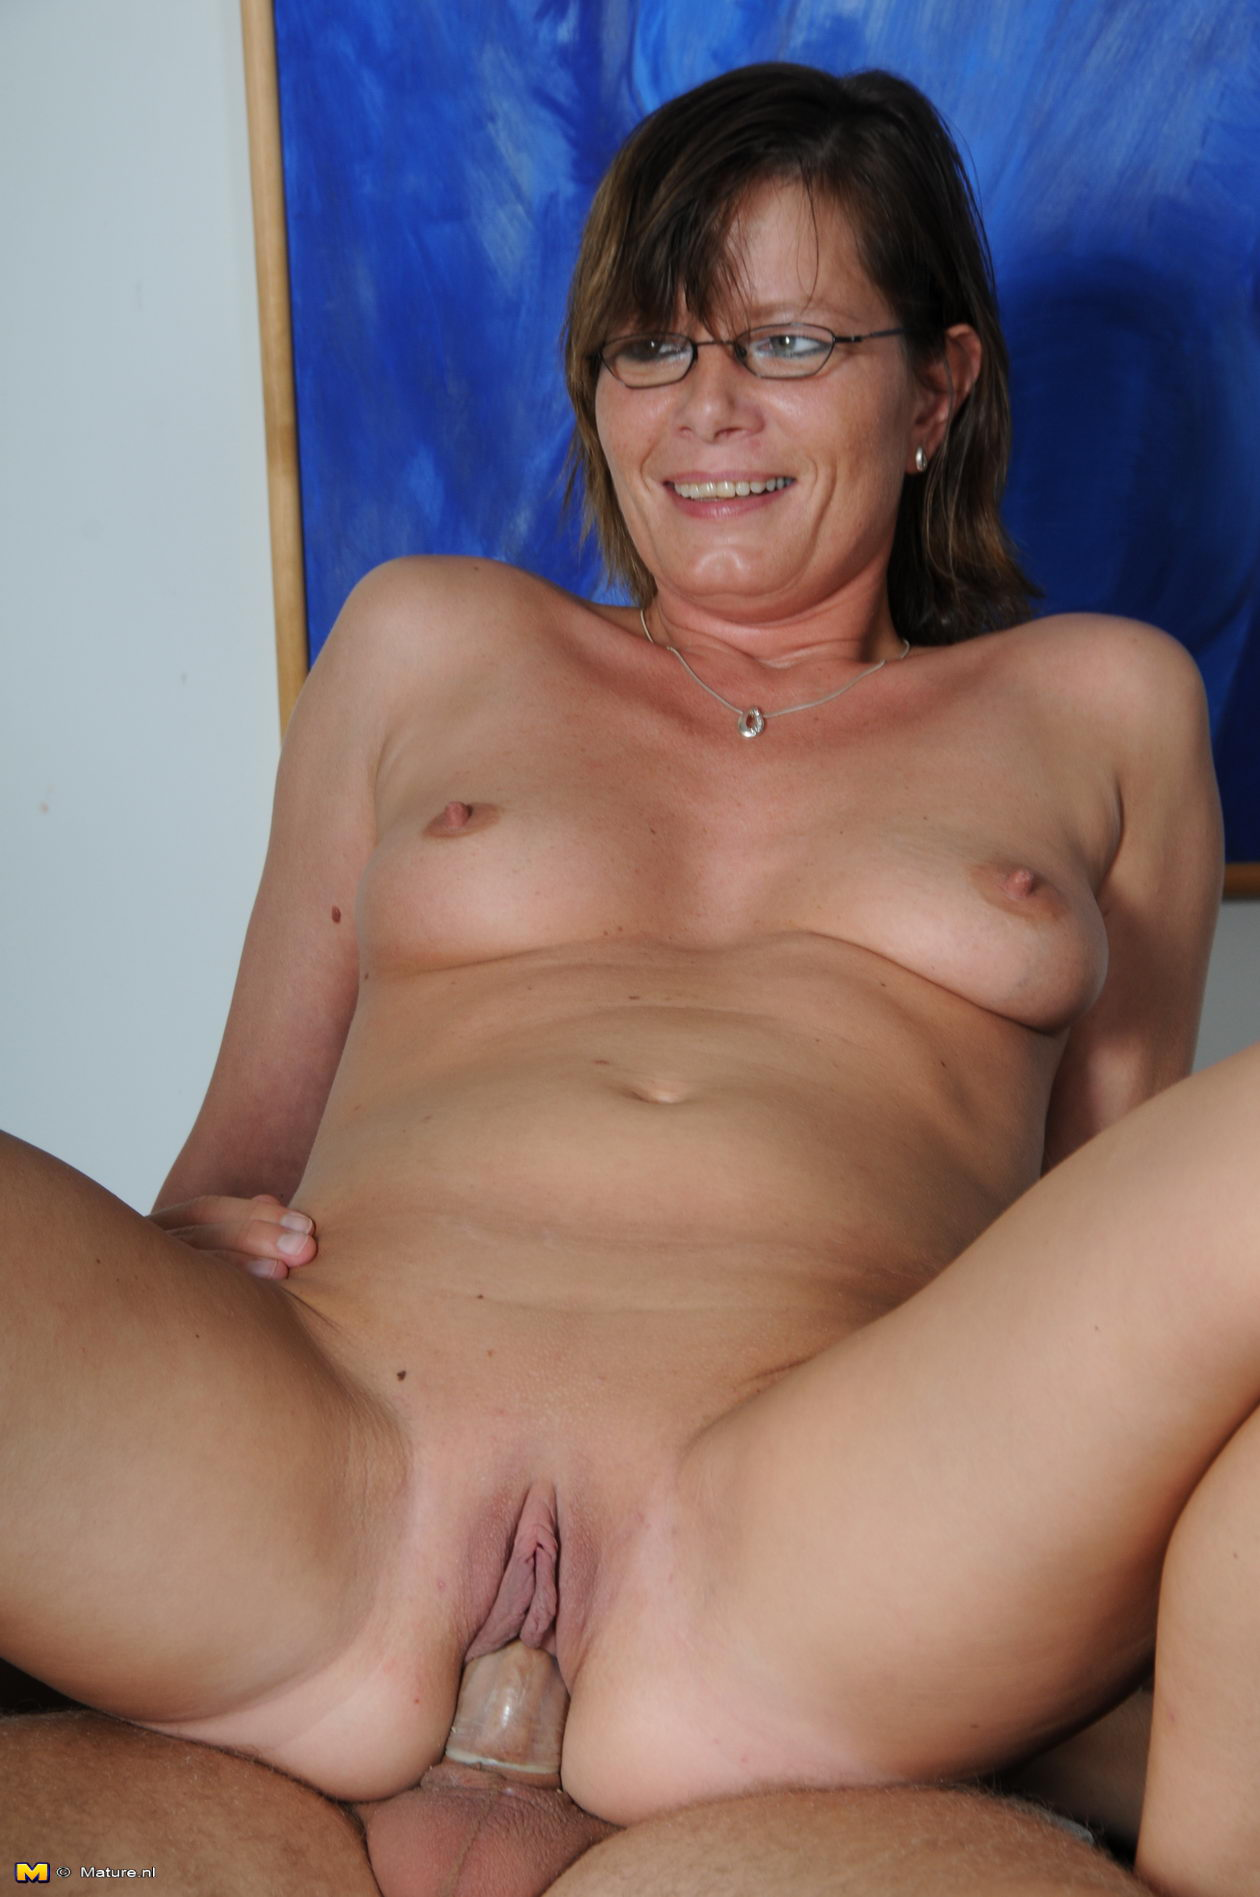 Horny mature housewives naked this